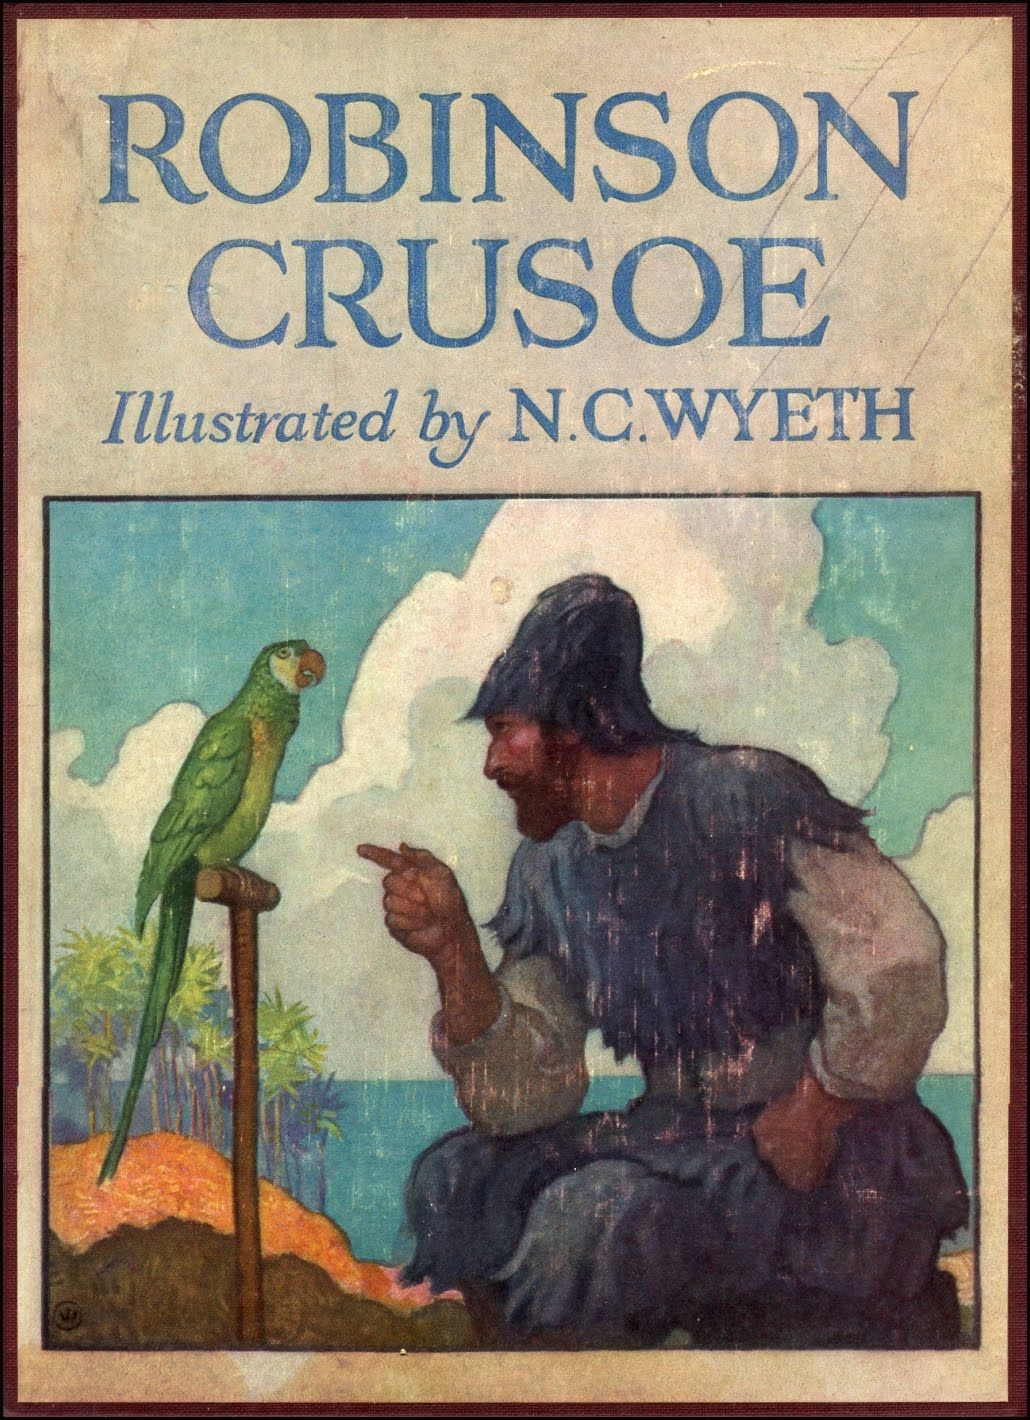 Image result for robinson crusoe book